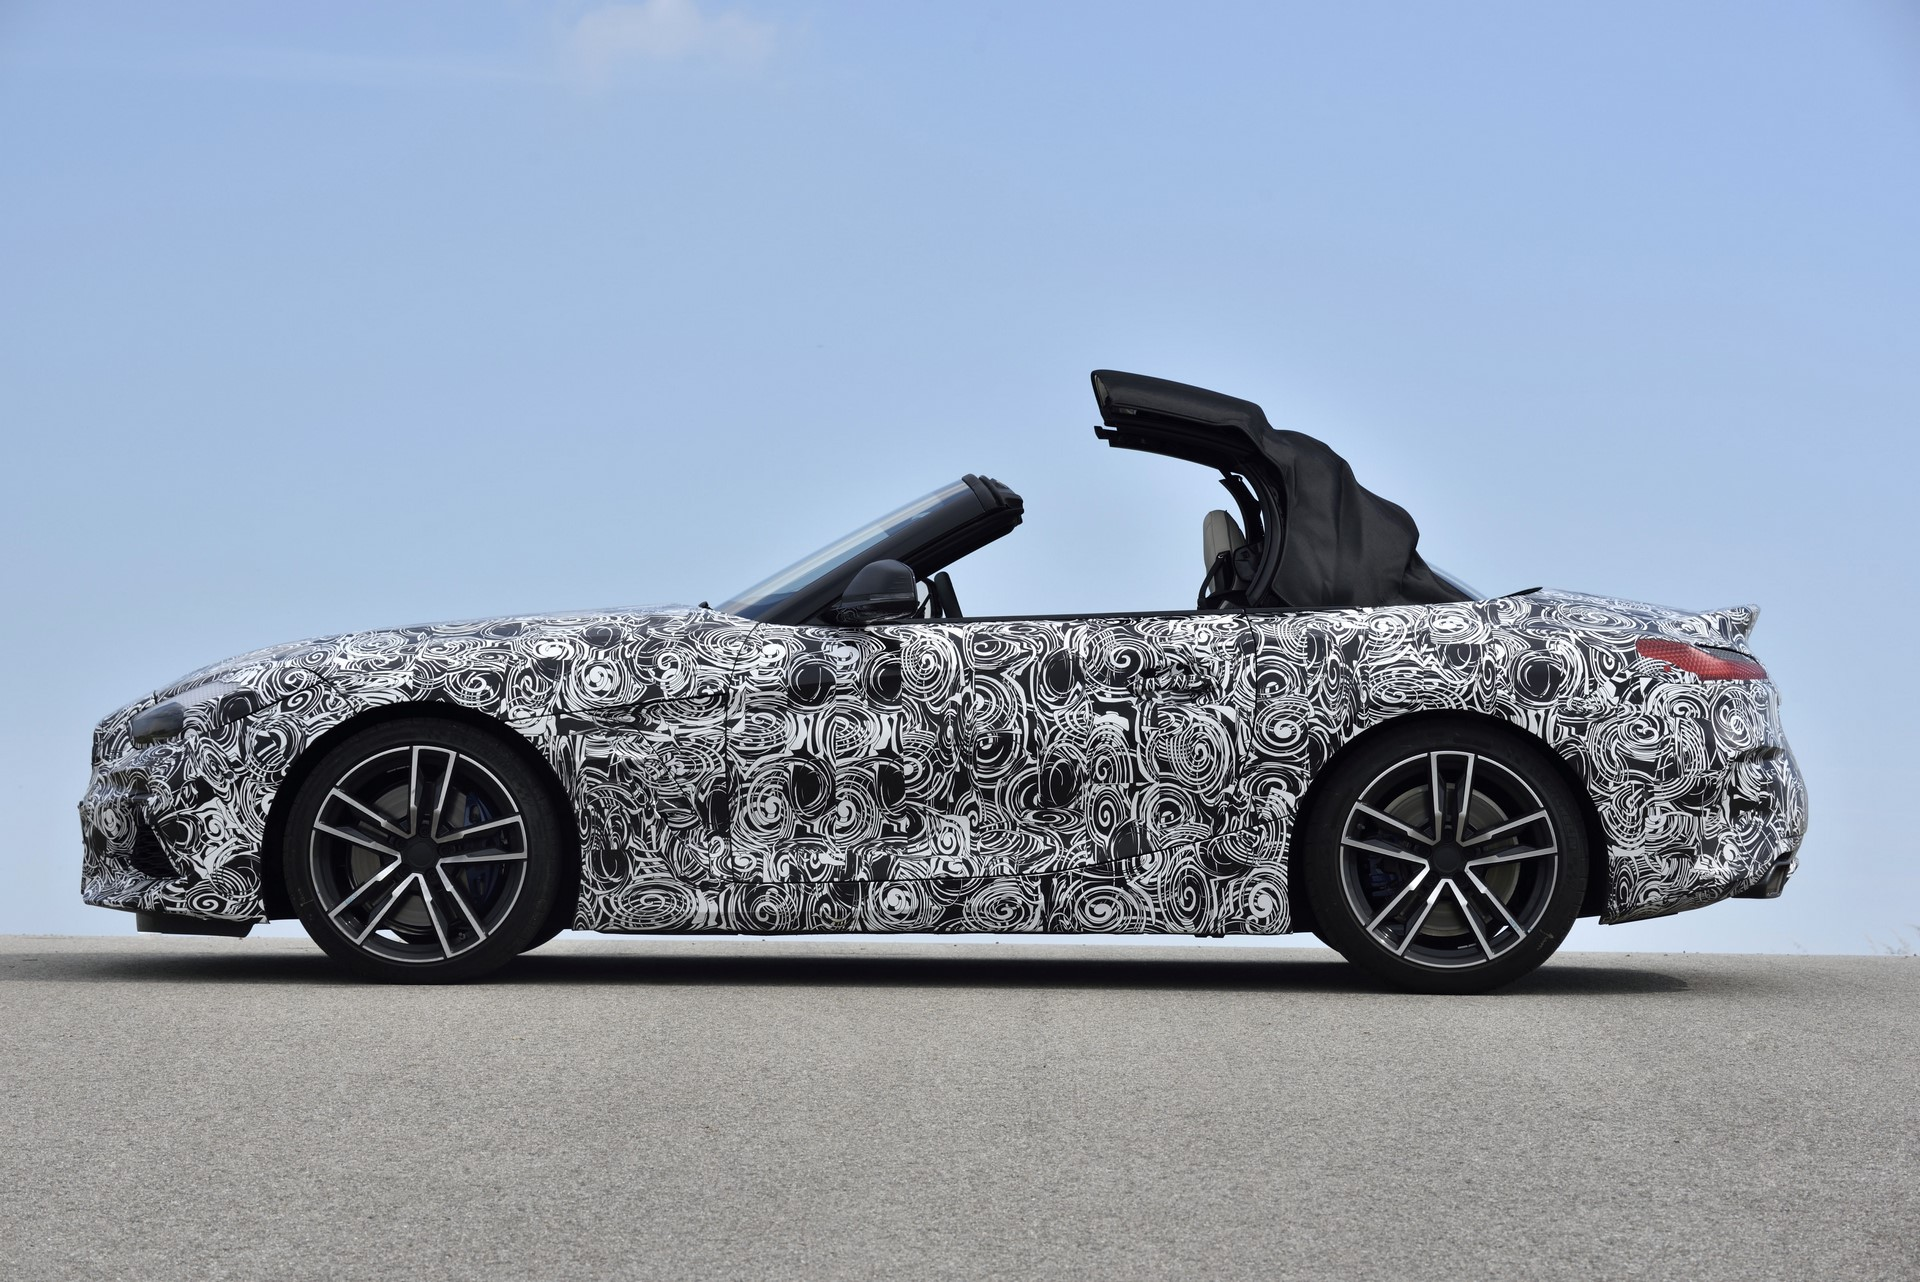 BMW Z4 M40i 2019 official spy photos (38)